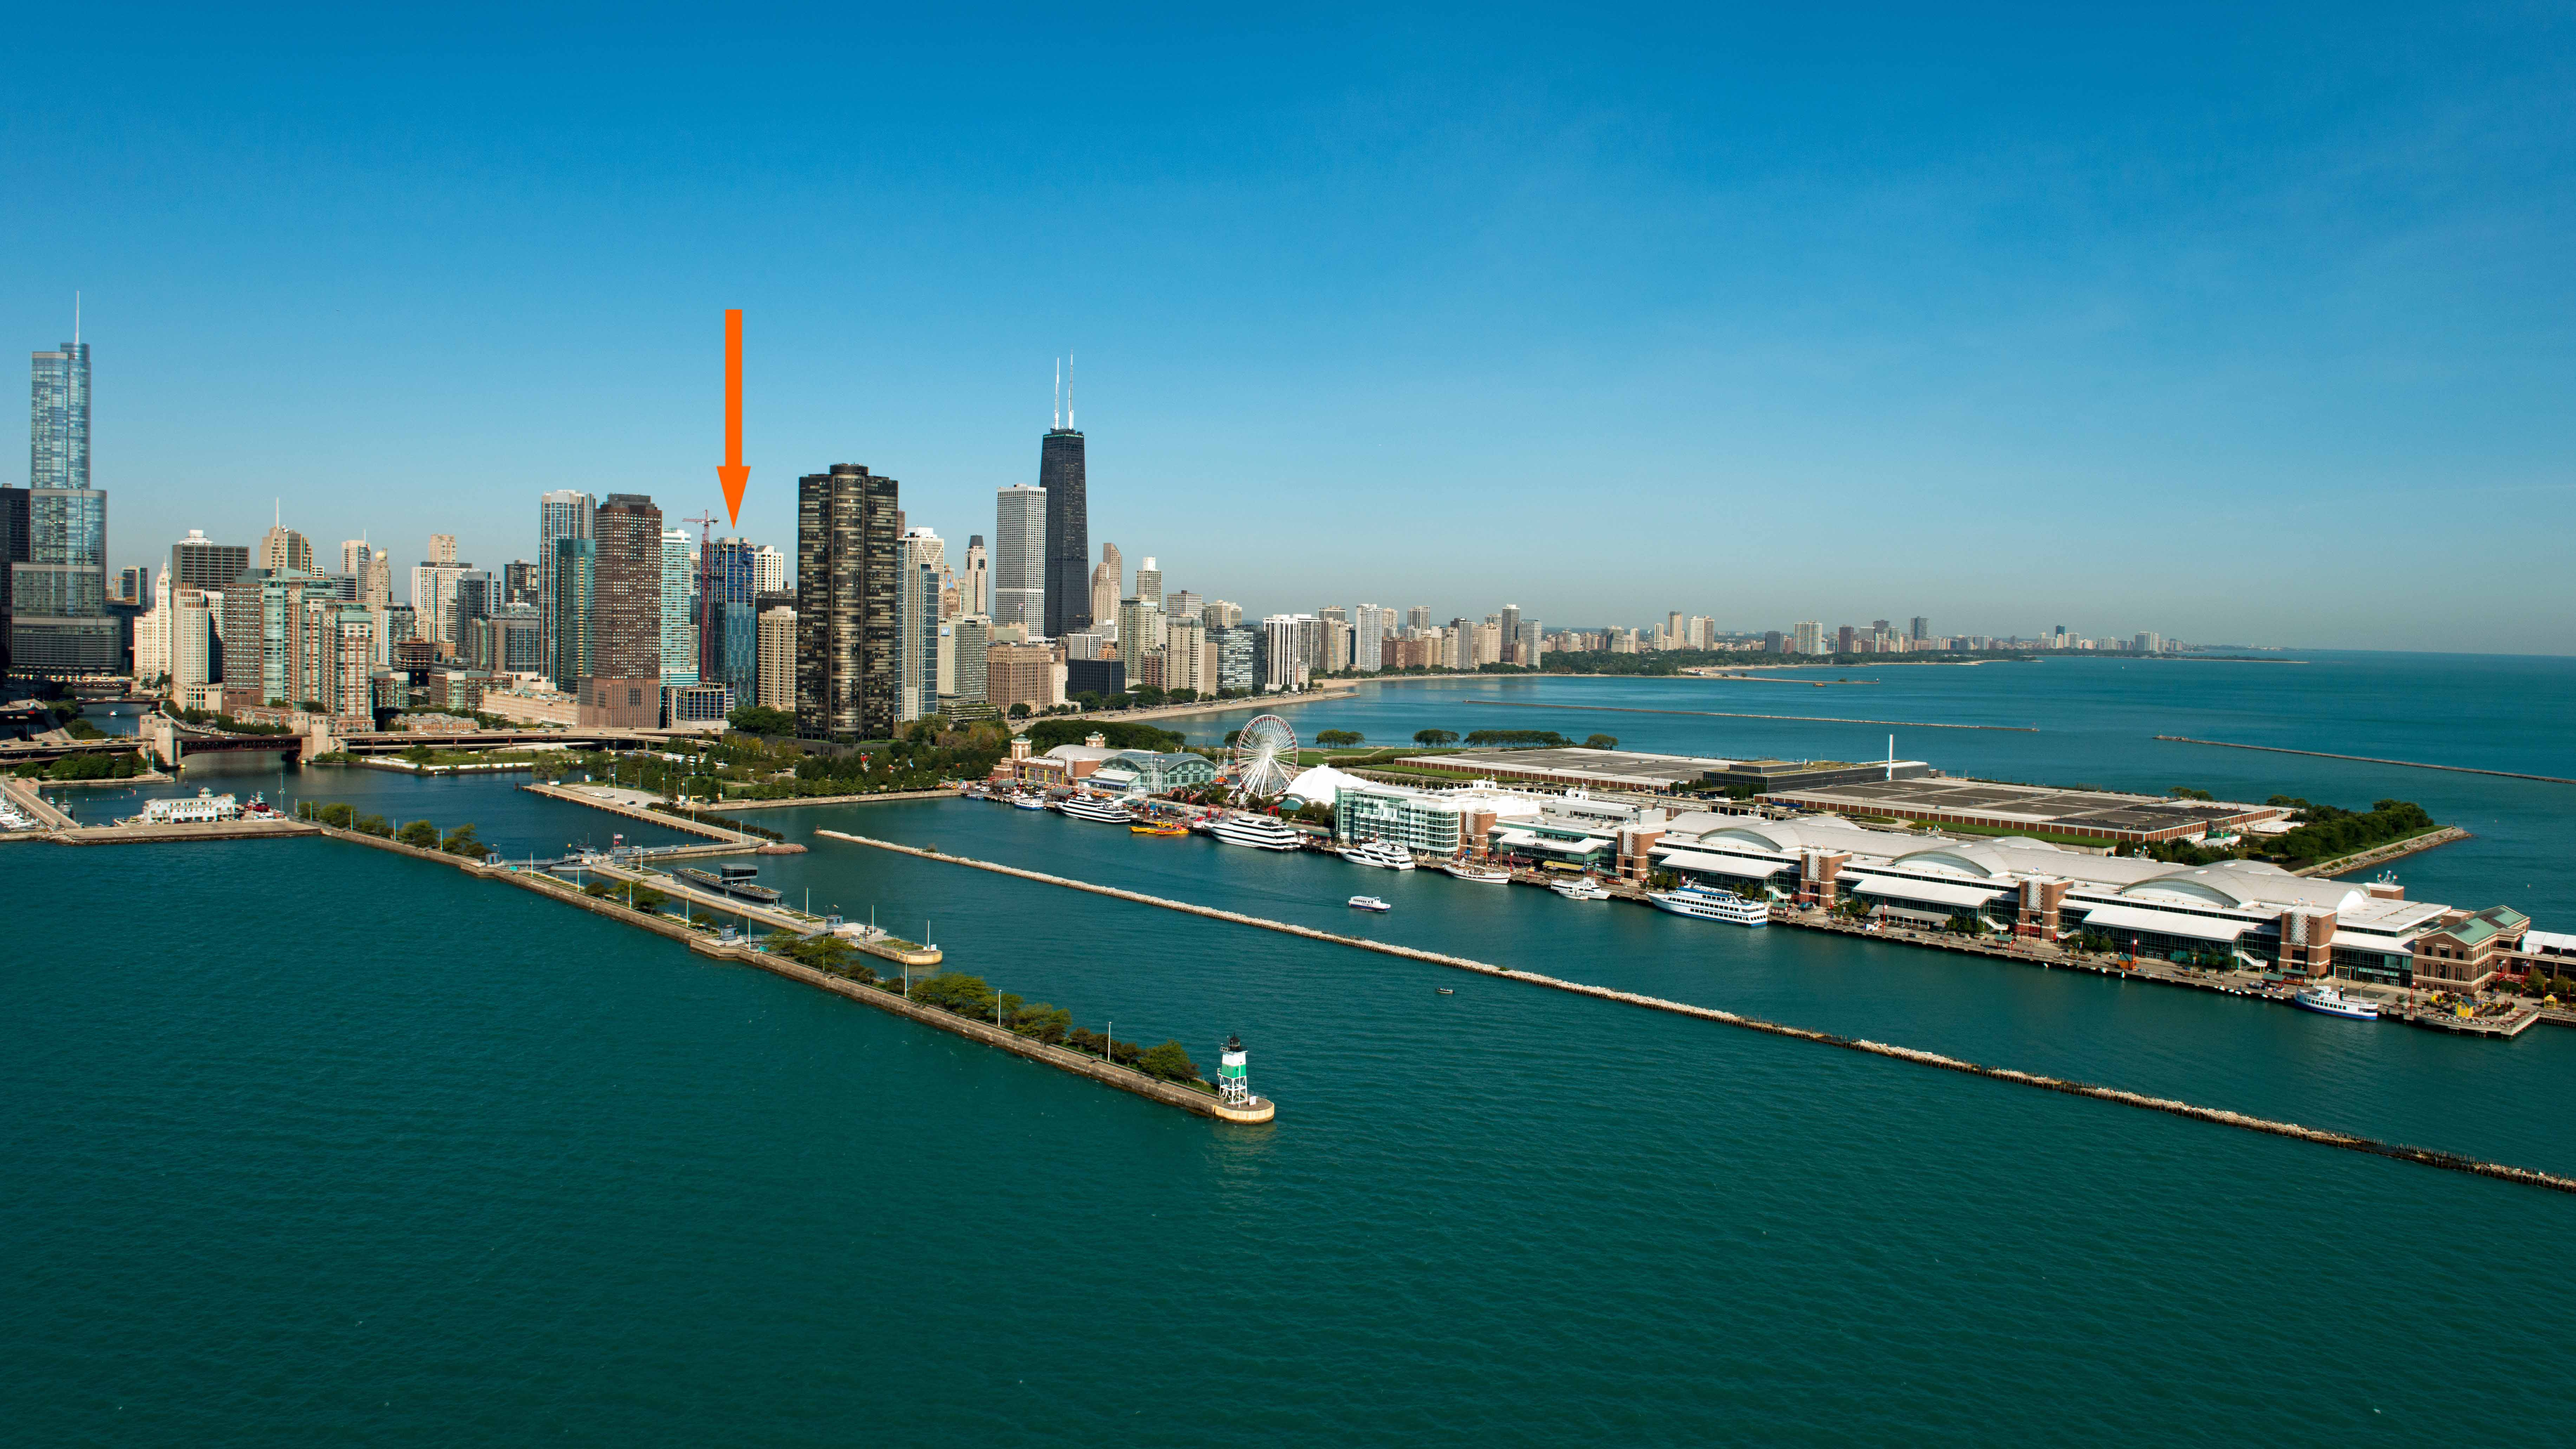 lakeside chicagos lakeshore drive - HD 7333×4125